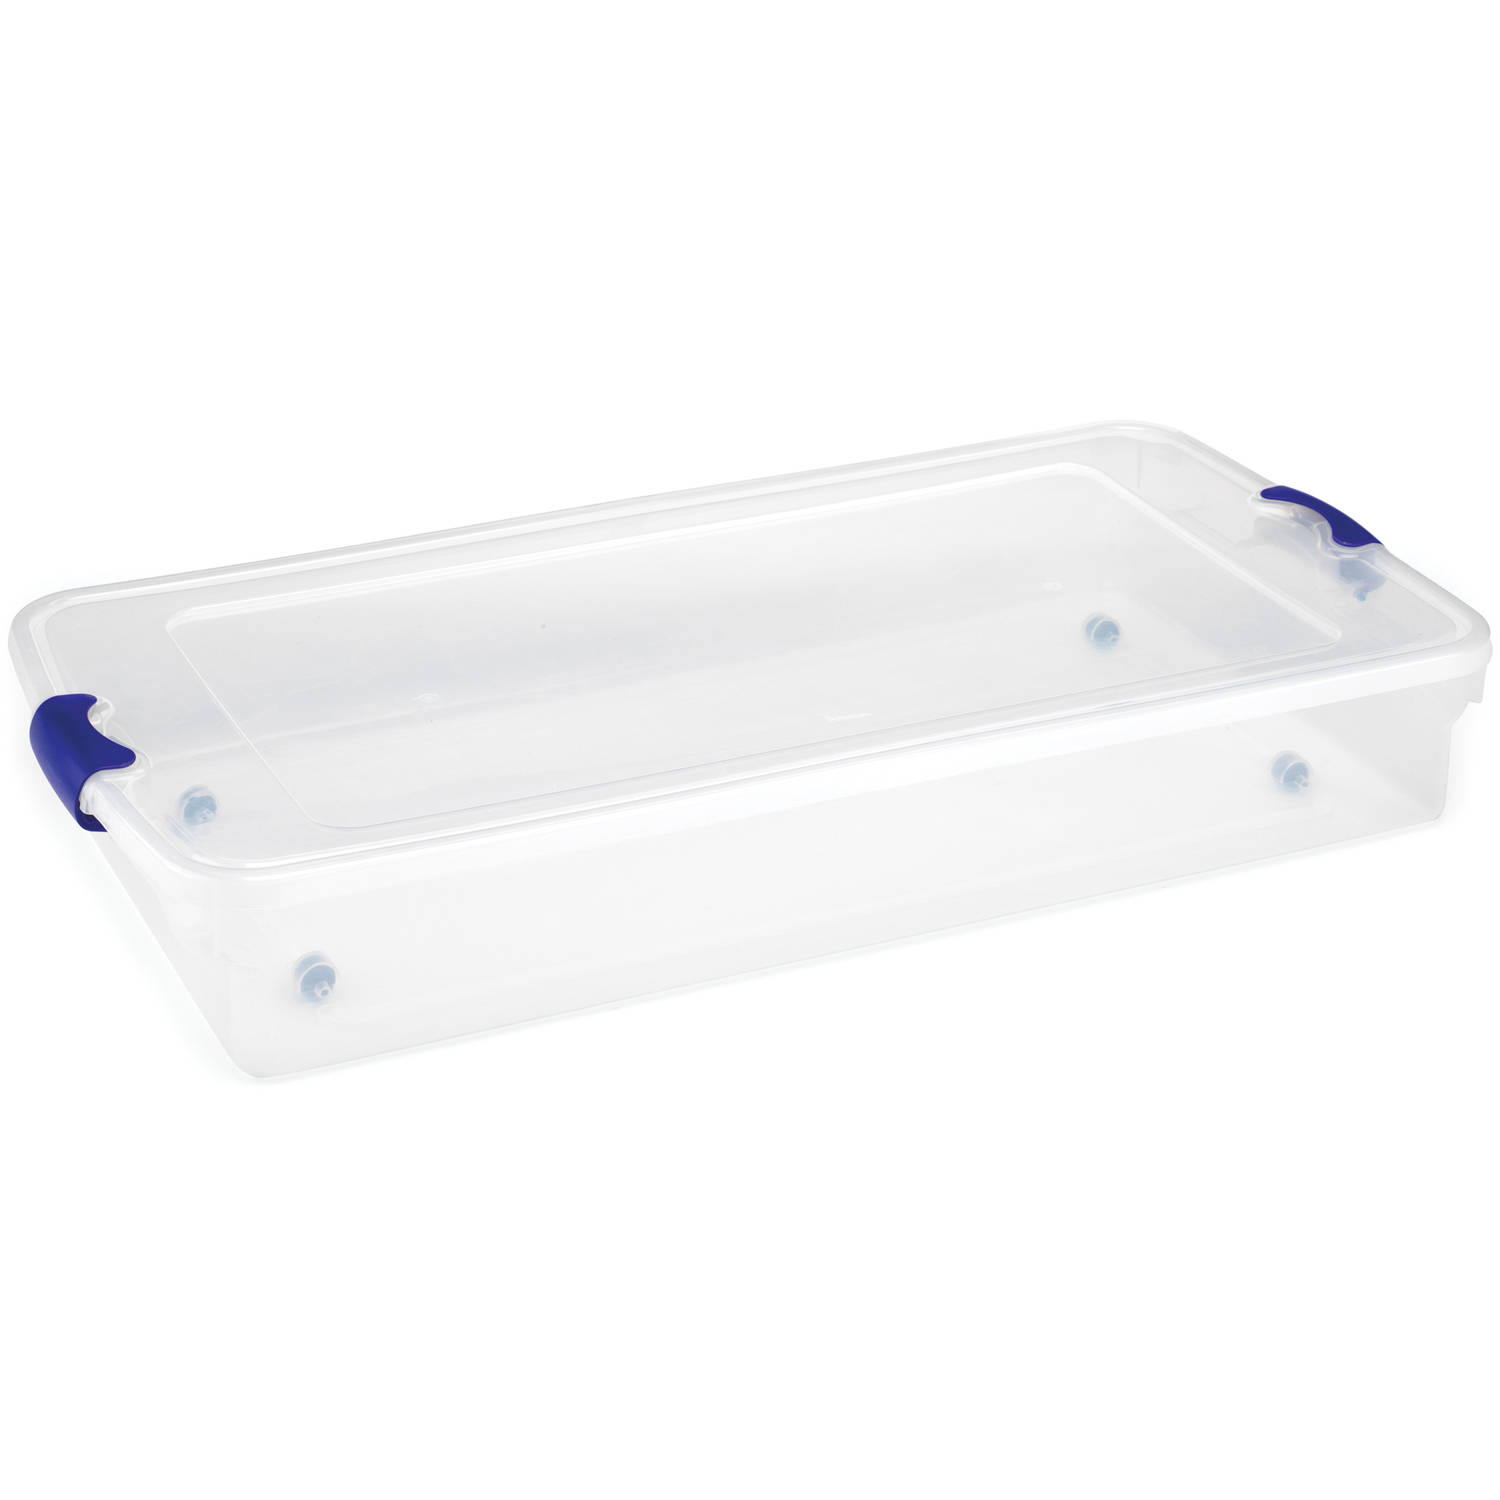 Homz 60 Quart Twin/King Under Bed Clear Latching Storage set of 2 - Walmart.com  sc 1 st  Walmart & Homz 60 Quart Twin/King Under Bed Clear Latching Storage set of 2 ...